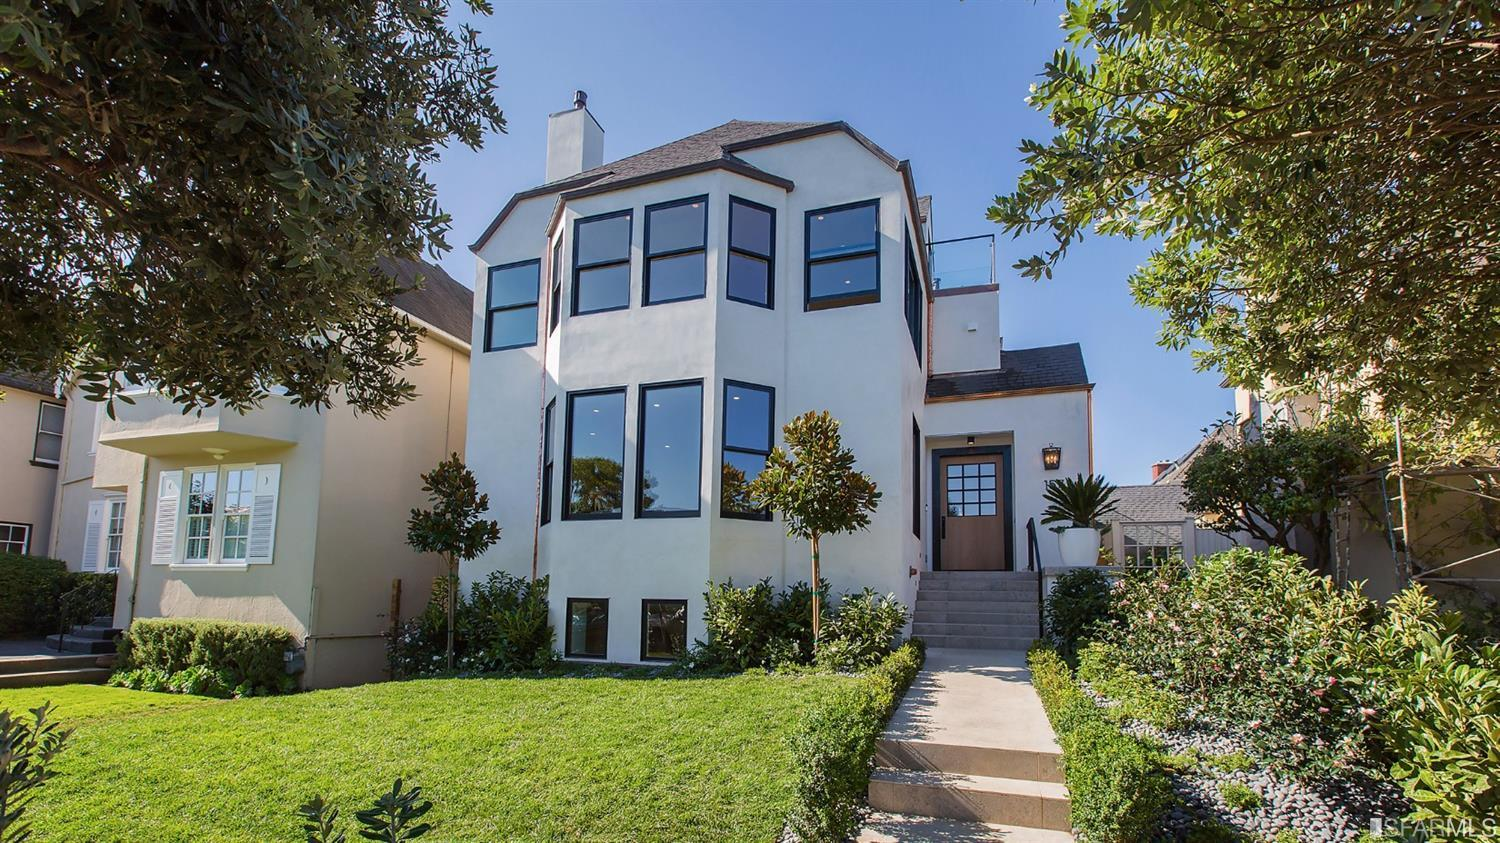 157 28th Ave, San Francisco, CA 94121 - Estimate and Home Details ...